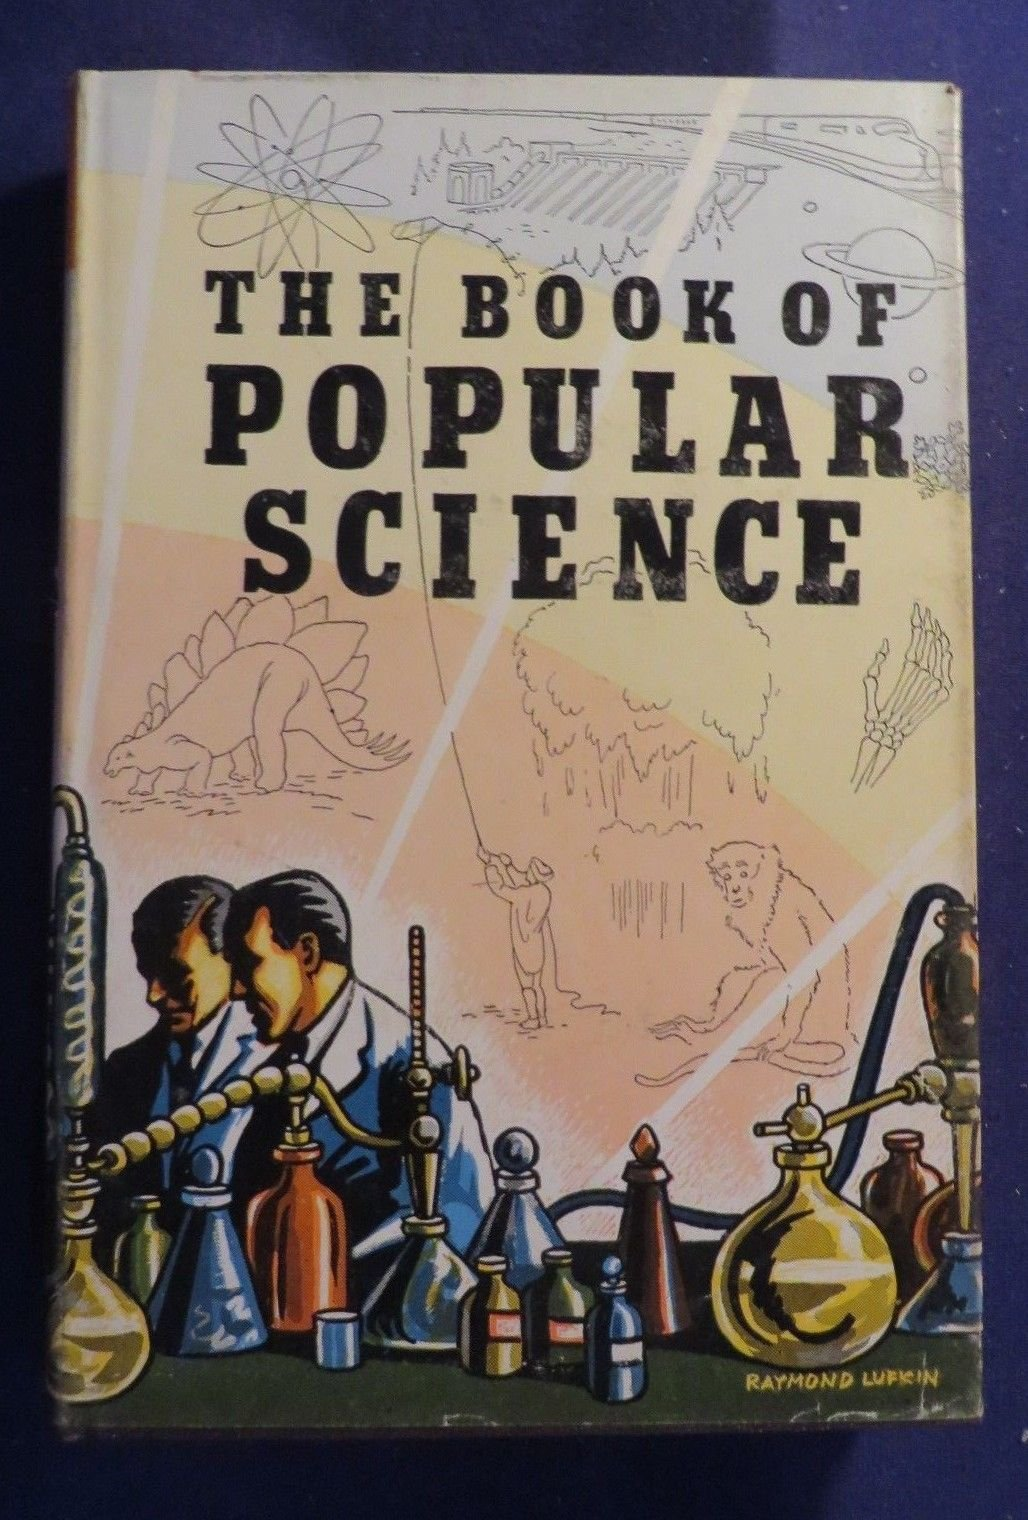 1951 The Book of Popular Science Vol 5 Hardcover Book by The GROLIER Society INC